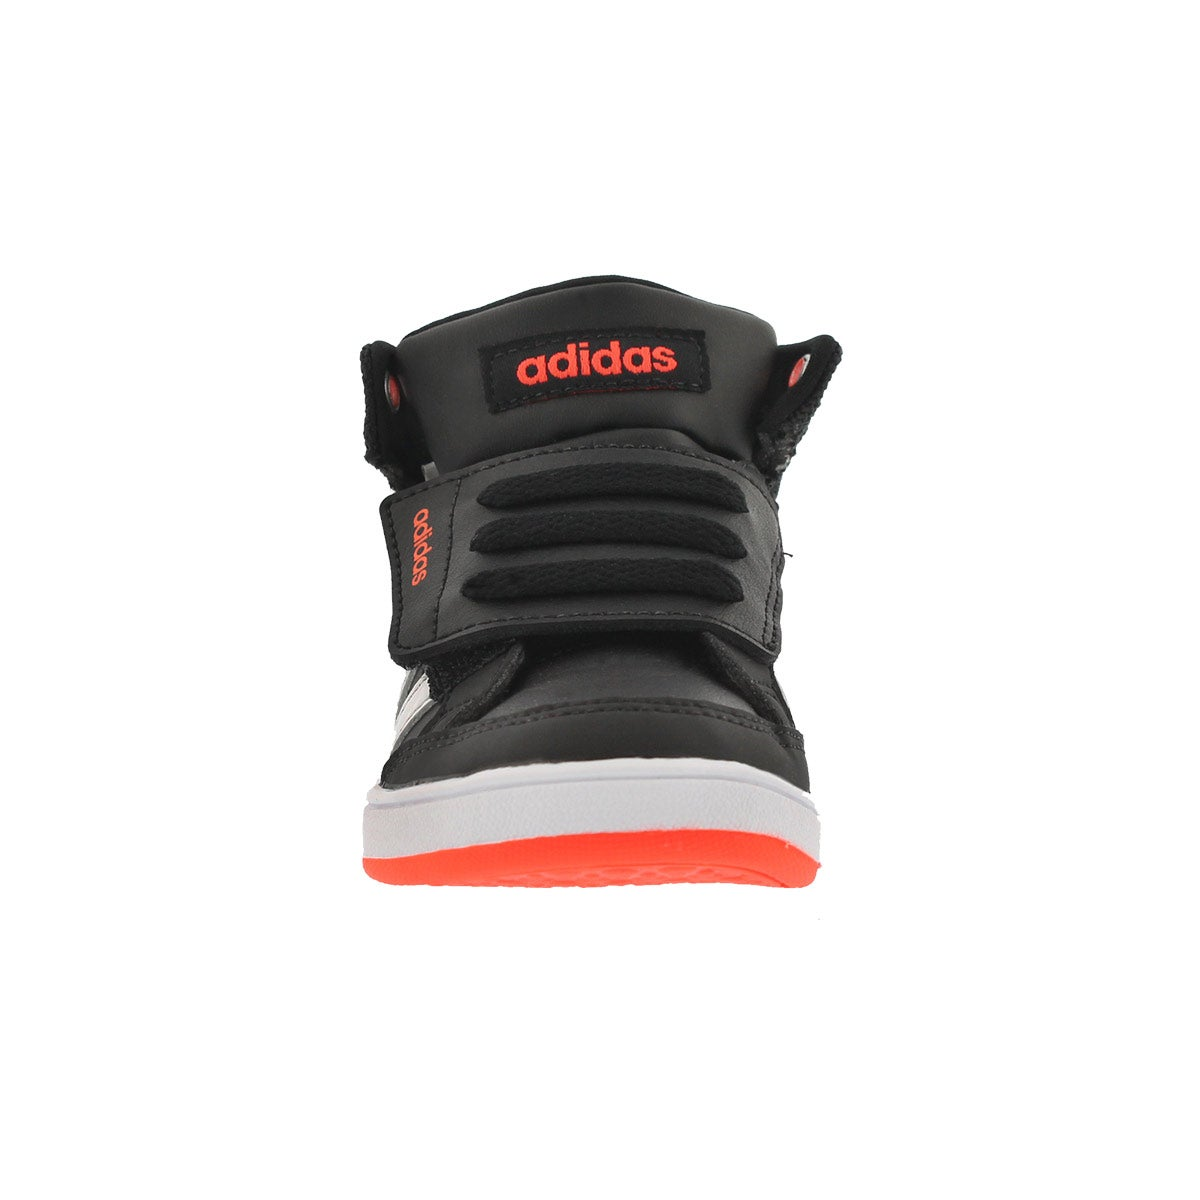 Inf-b HoopsCMF Mid blk/red hightop snkr